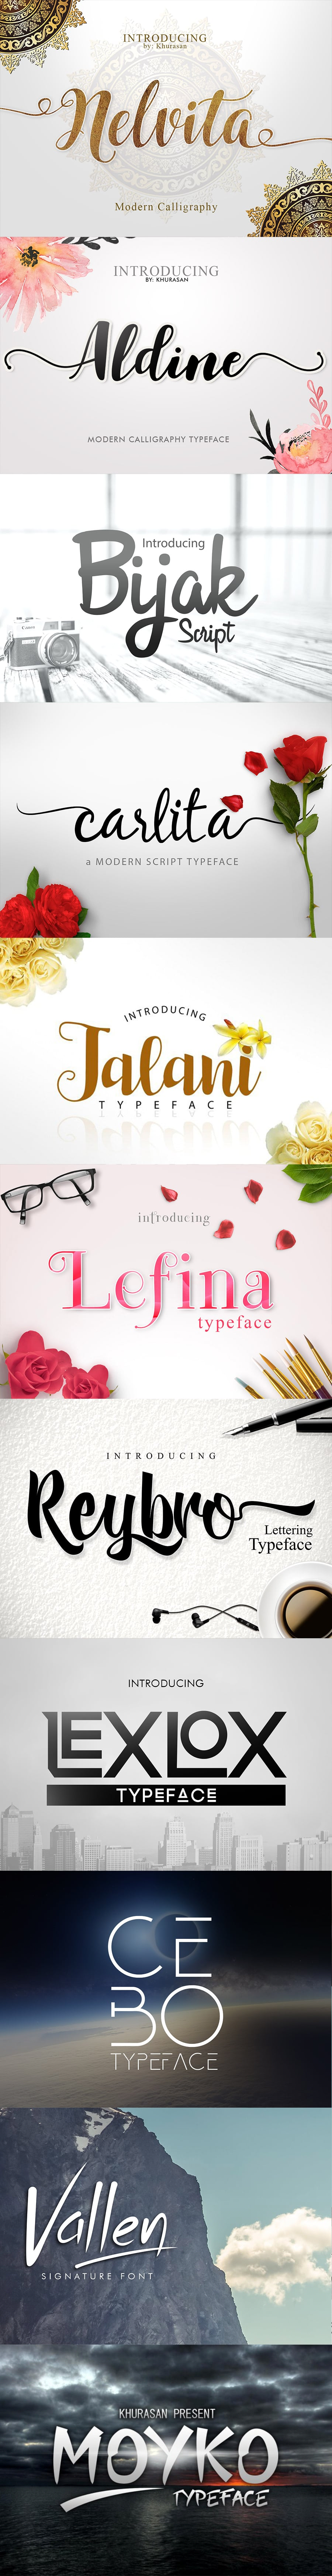 11 Artistic Fonts - Premium Quality Collection. Only $10 - Preview4